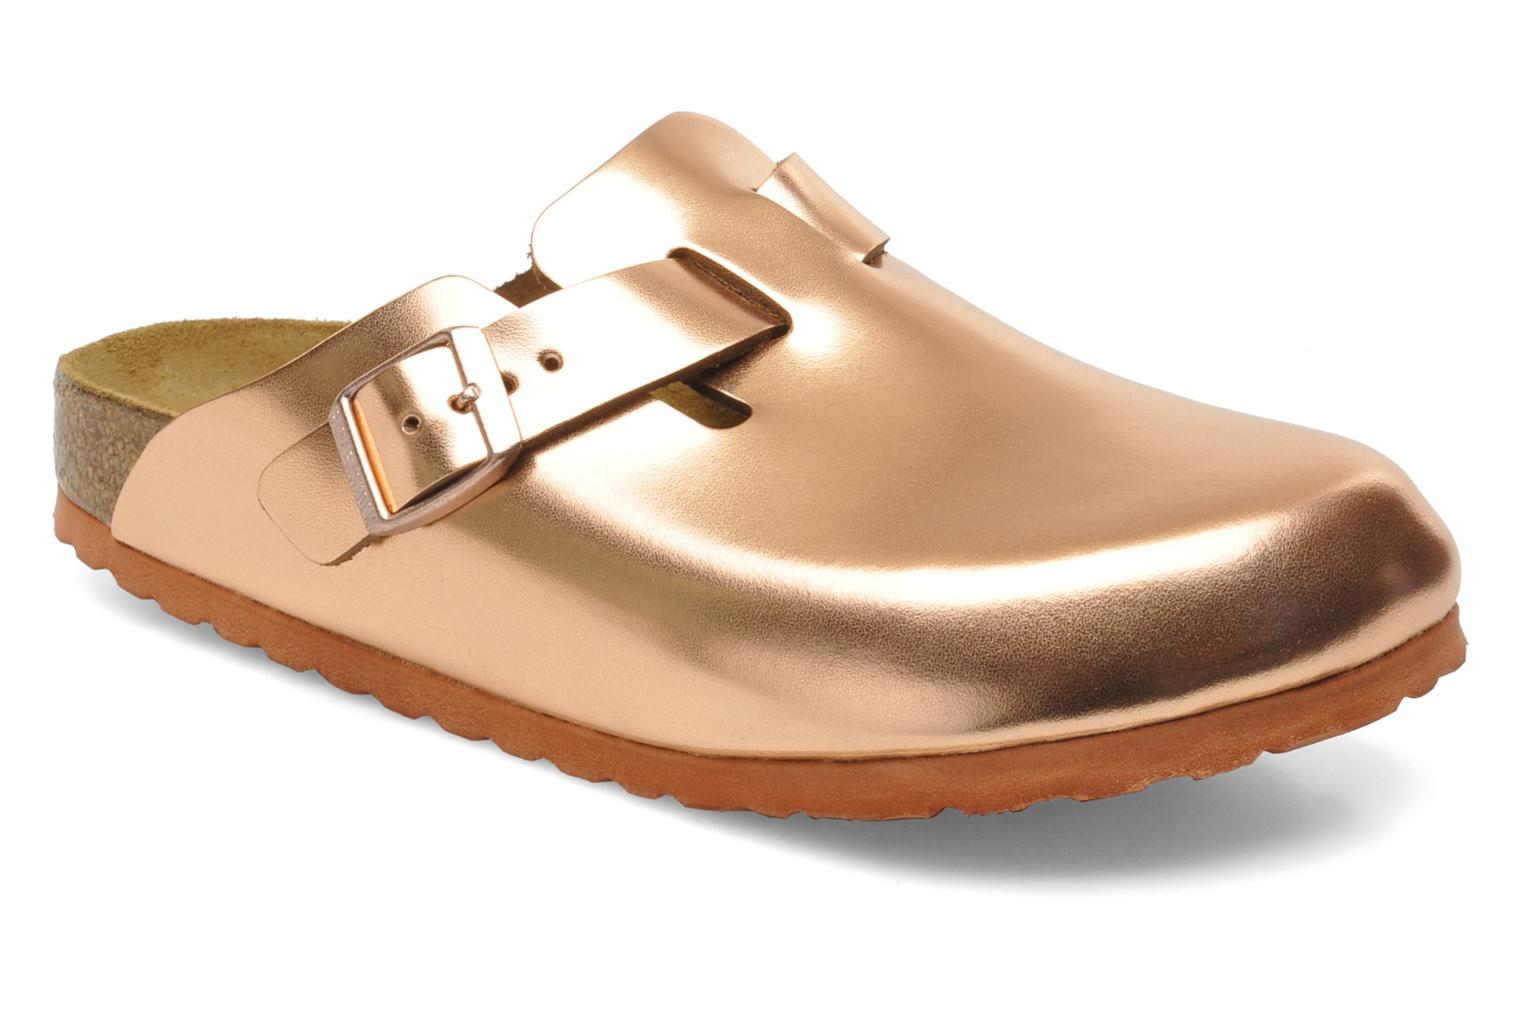 birkenstock boston cuir w mules clogs in bronze and gold. Black Bedroom Furniture Sets. Home Design Ideas